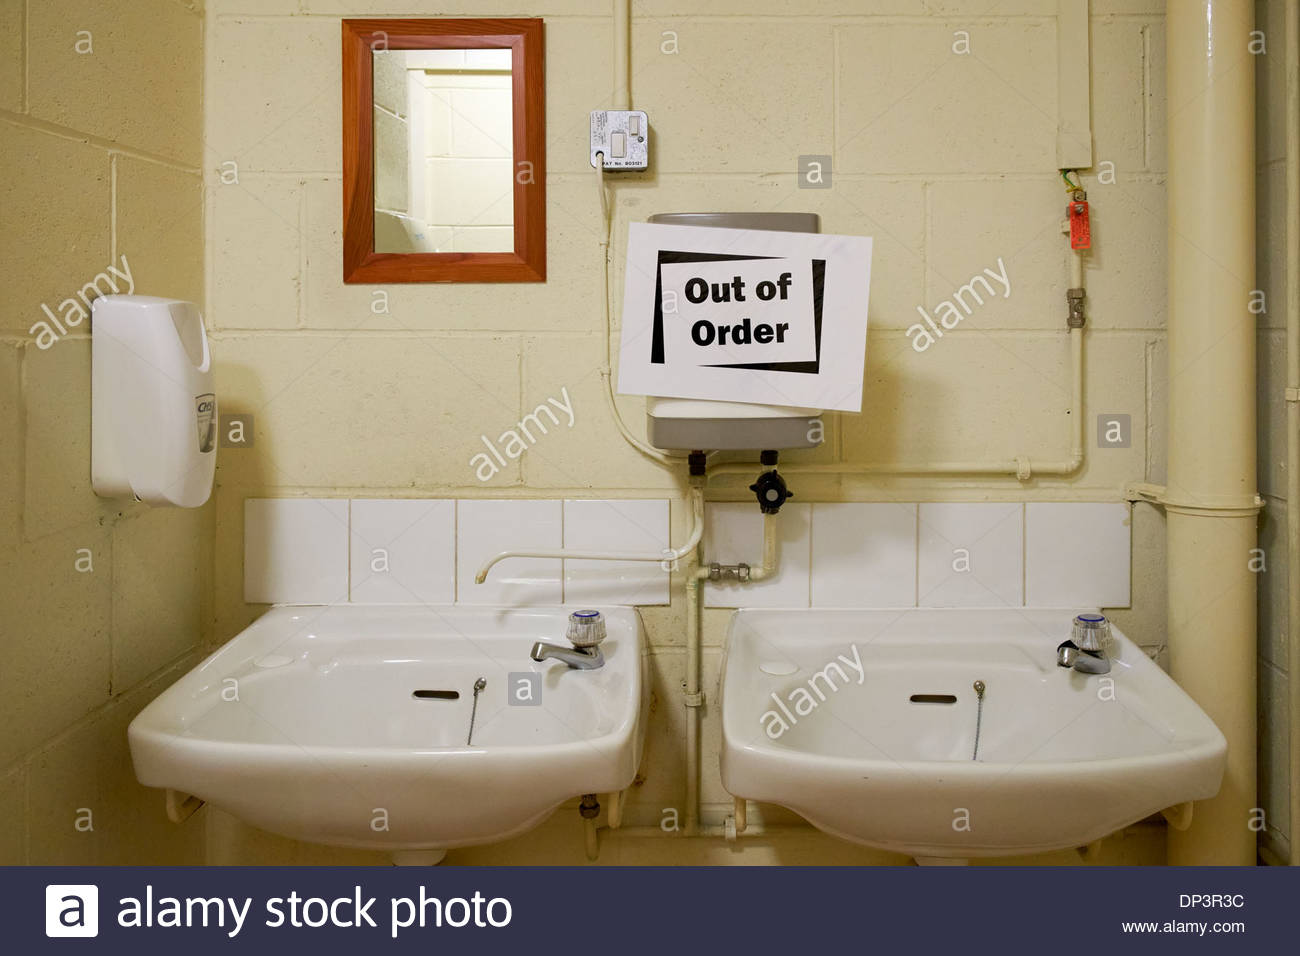 Out of order sign on hot water heater above washbasins in for Bathroom hot images